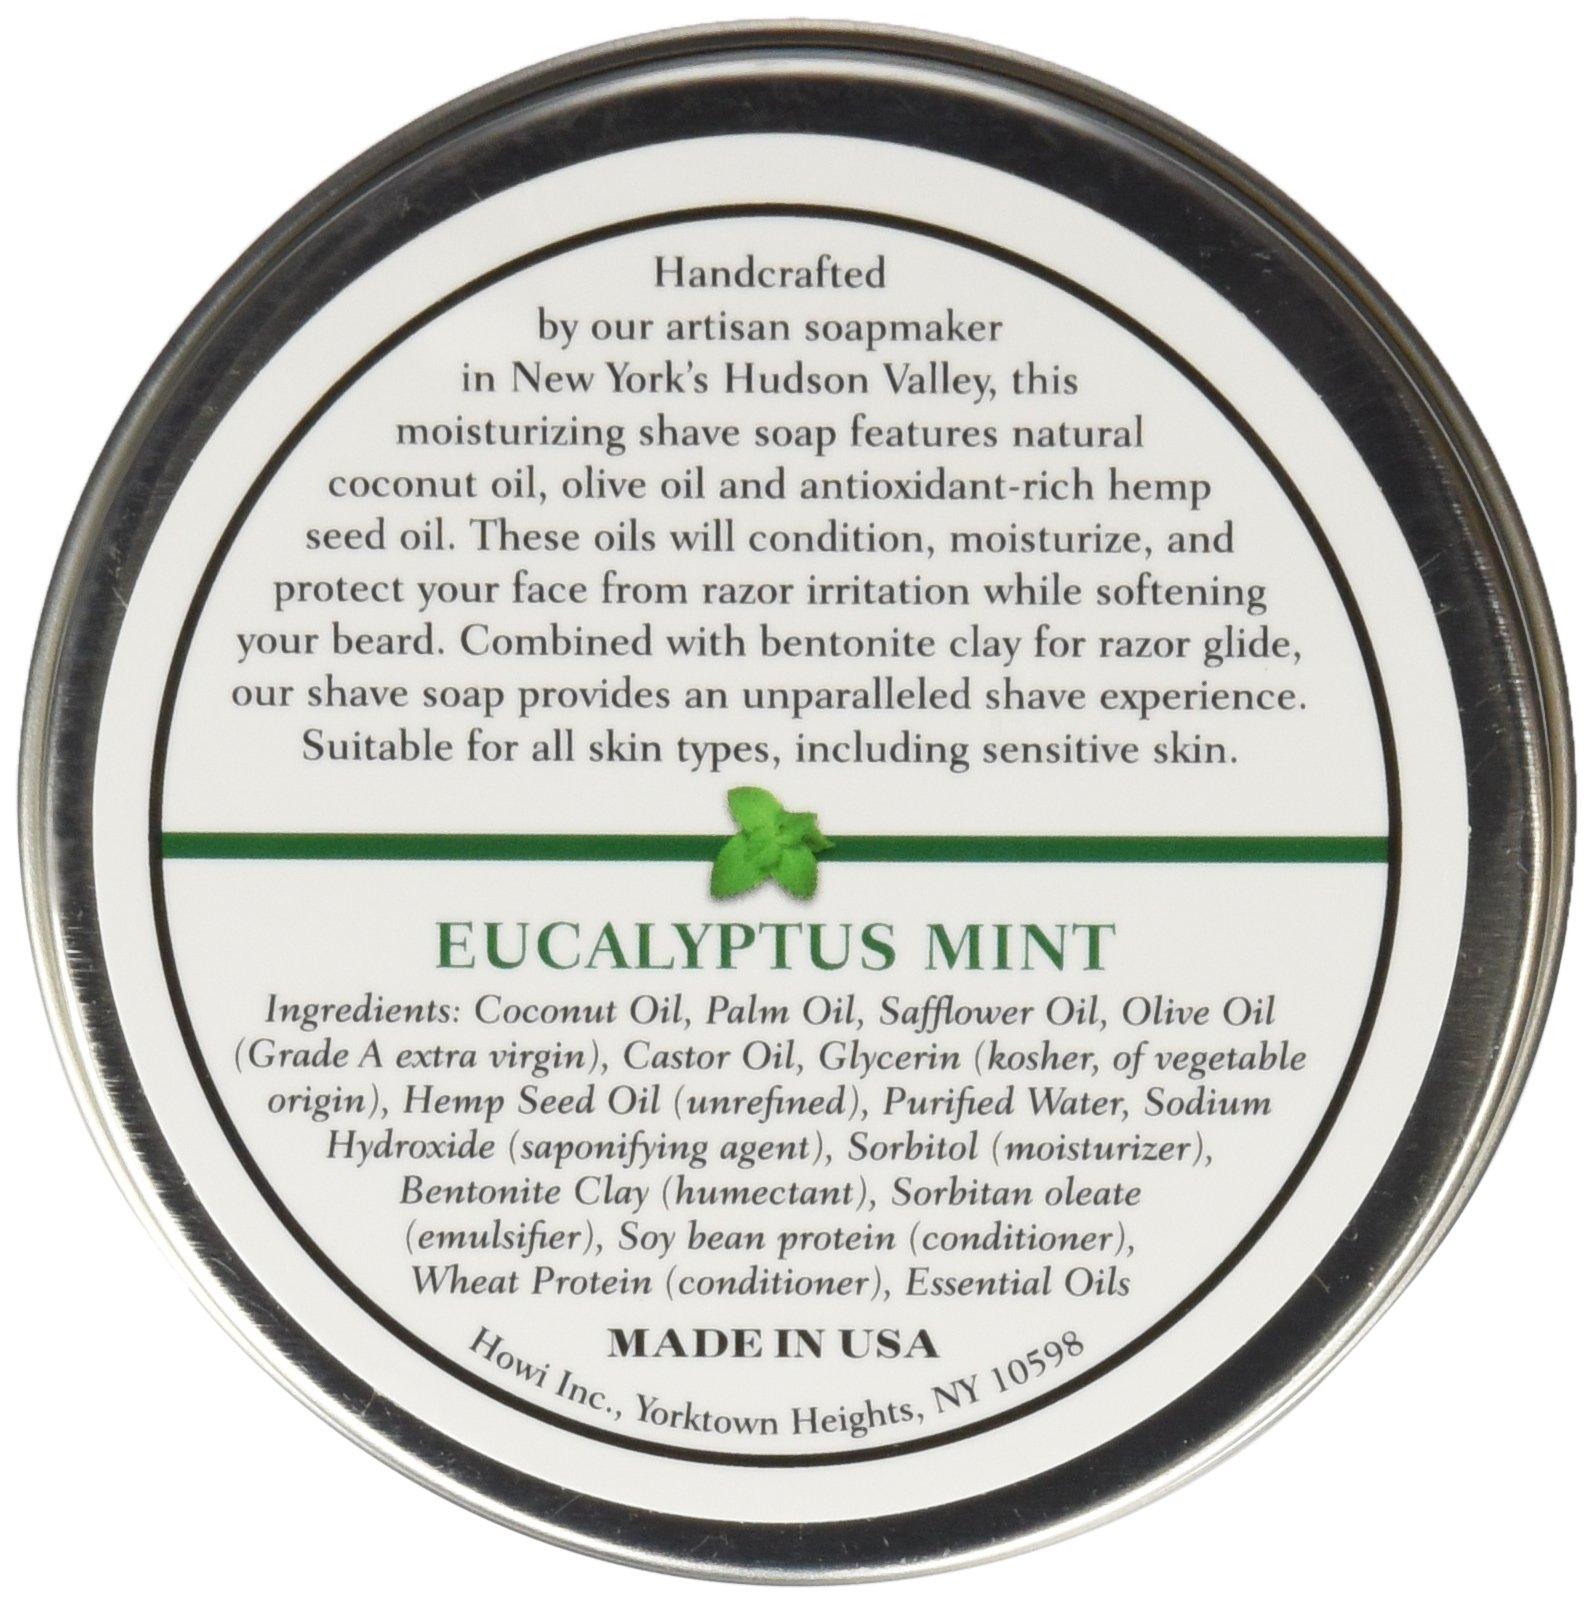 Taconic Shave Barbershop Quality Eucalyptus Mint Shaving Soap with Antioxidant-Rich Hemp Seed Oil